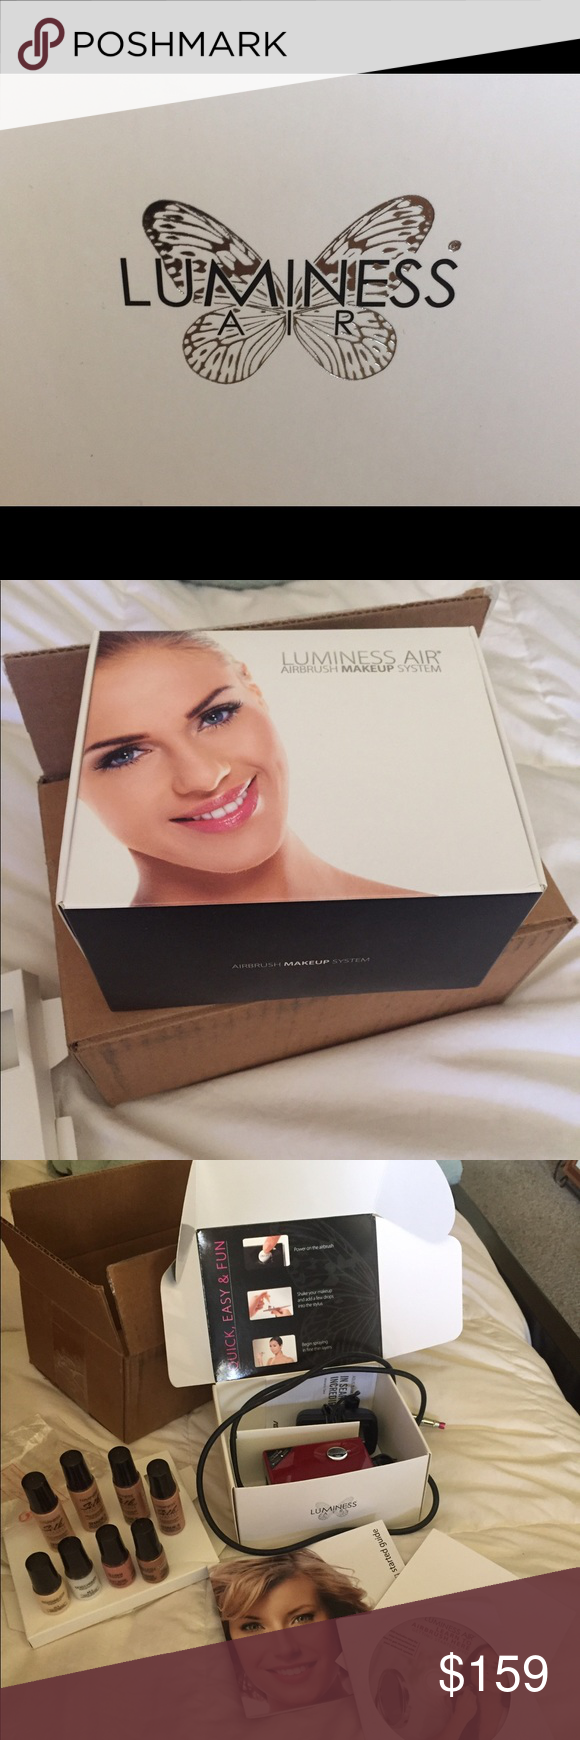 Luminess Air brush makeup! This is the whole package! I